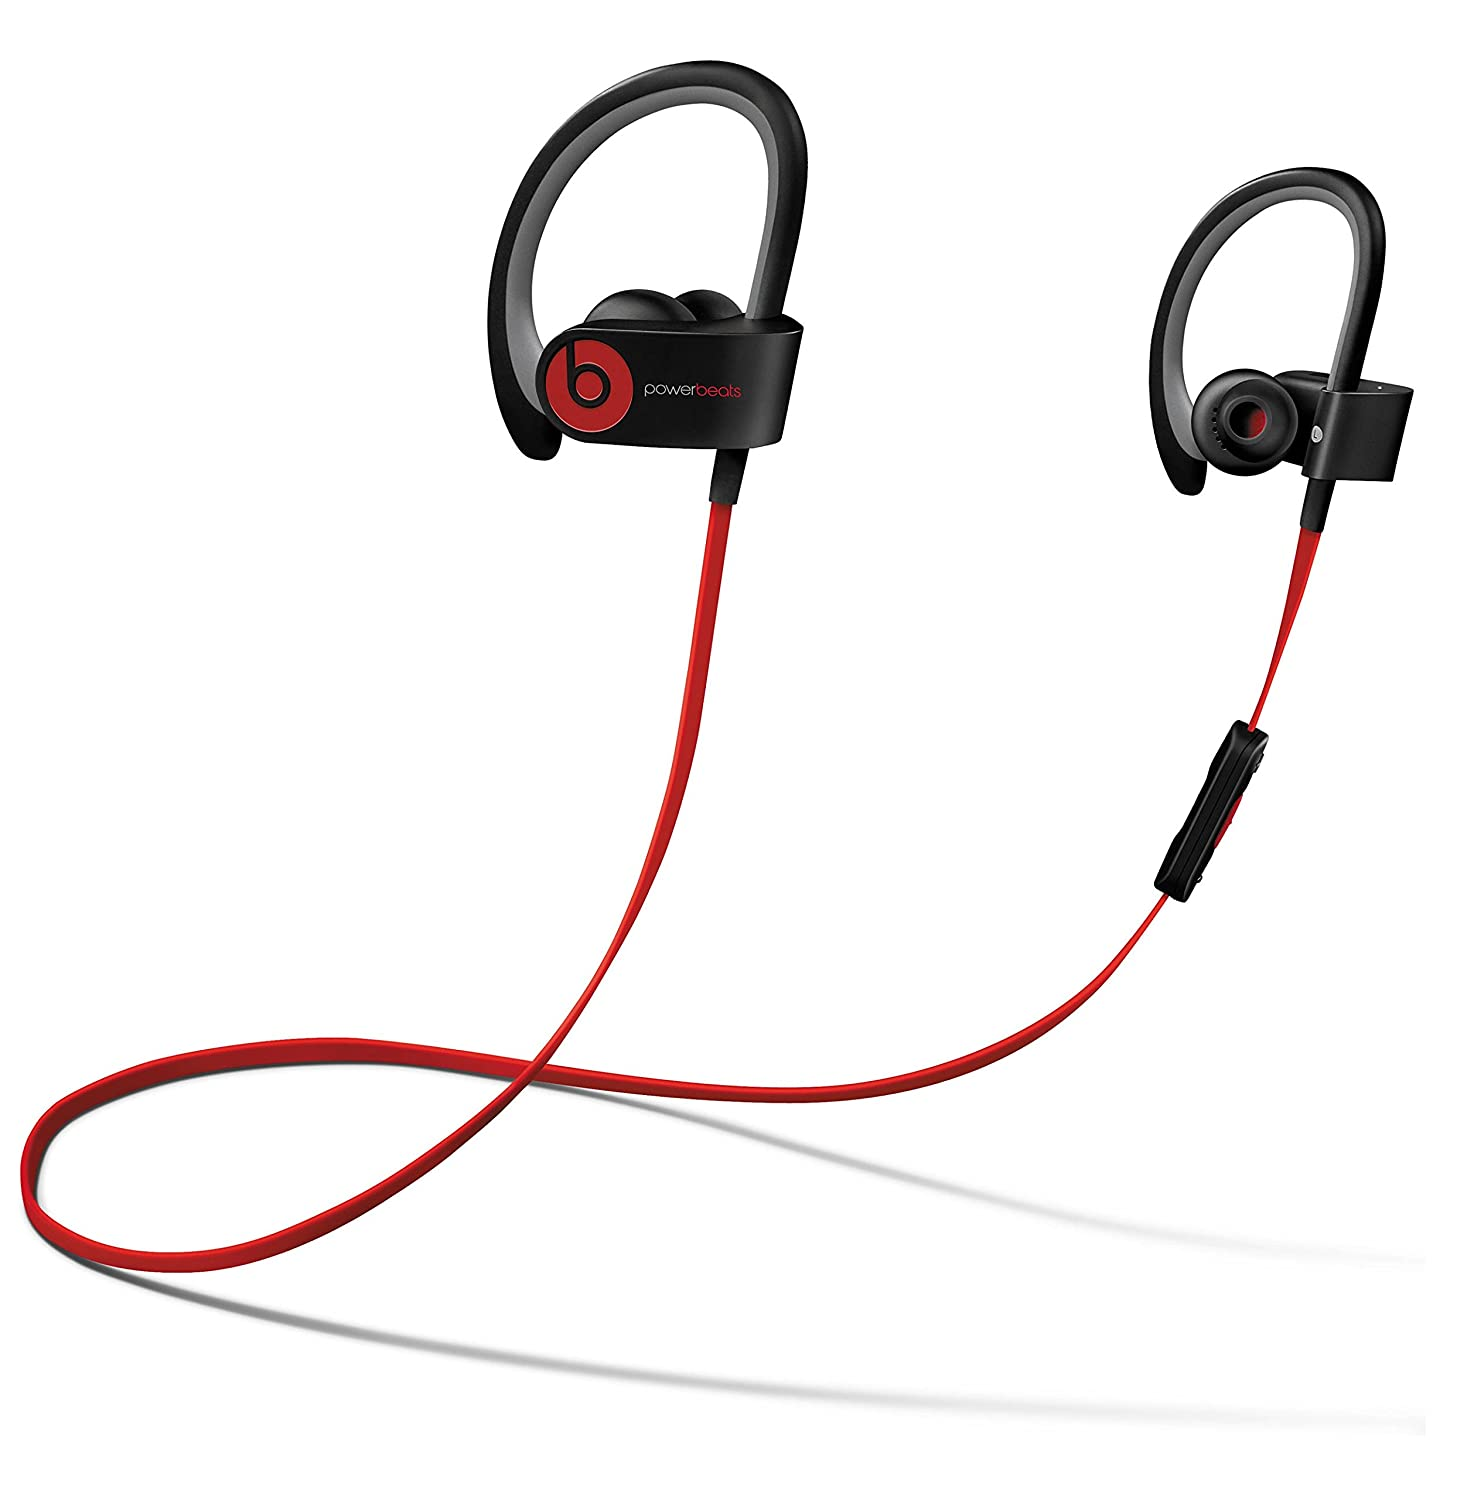 ad0549fd167 Amazon.com: Beats by Dr dre Powerbeats2 Wireless In-Ear Bluetooth Headphone  with Mic - Black (Renewed): Home Audio & Theater